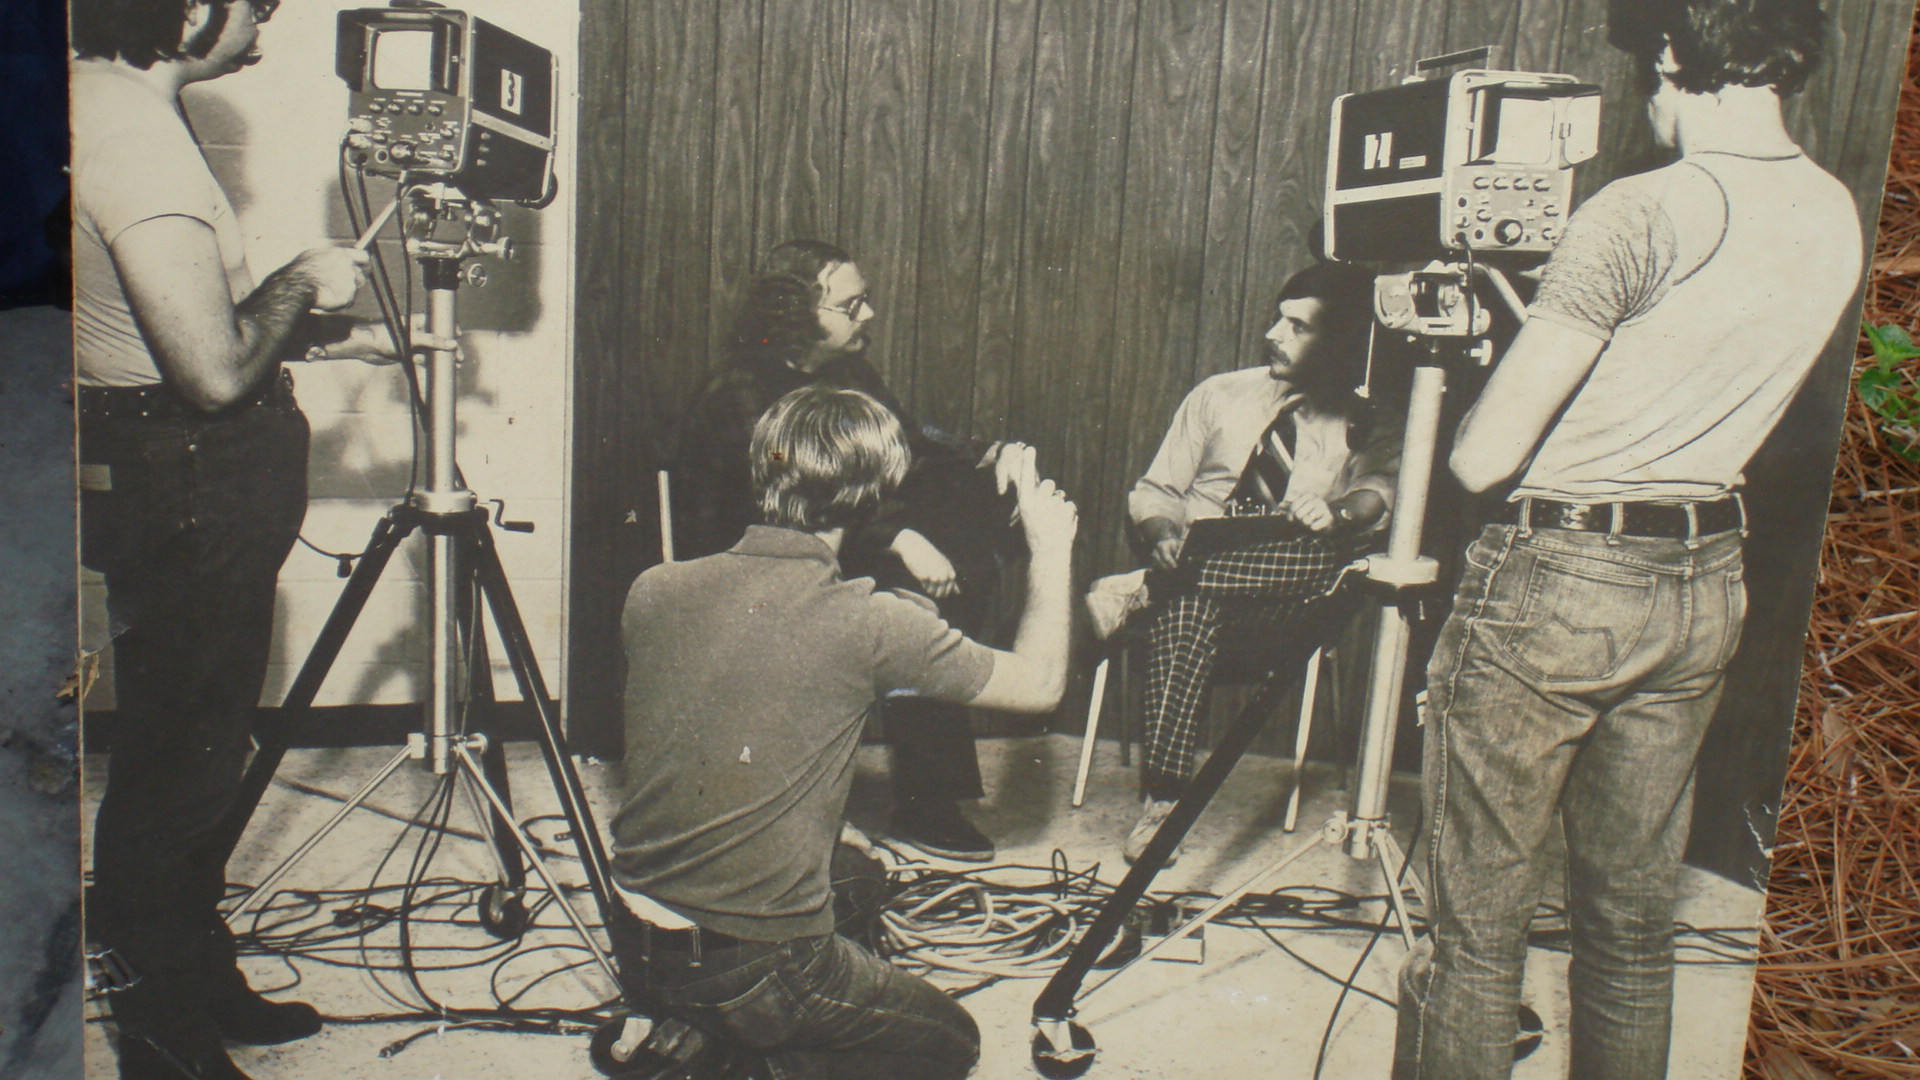 This photo from the early 1970s shows my broadcasting professor Dave Champoux (Mr. C) being interviewed by a student. Photo- Herkimer College